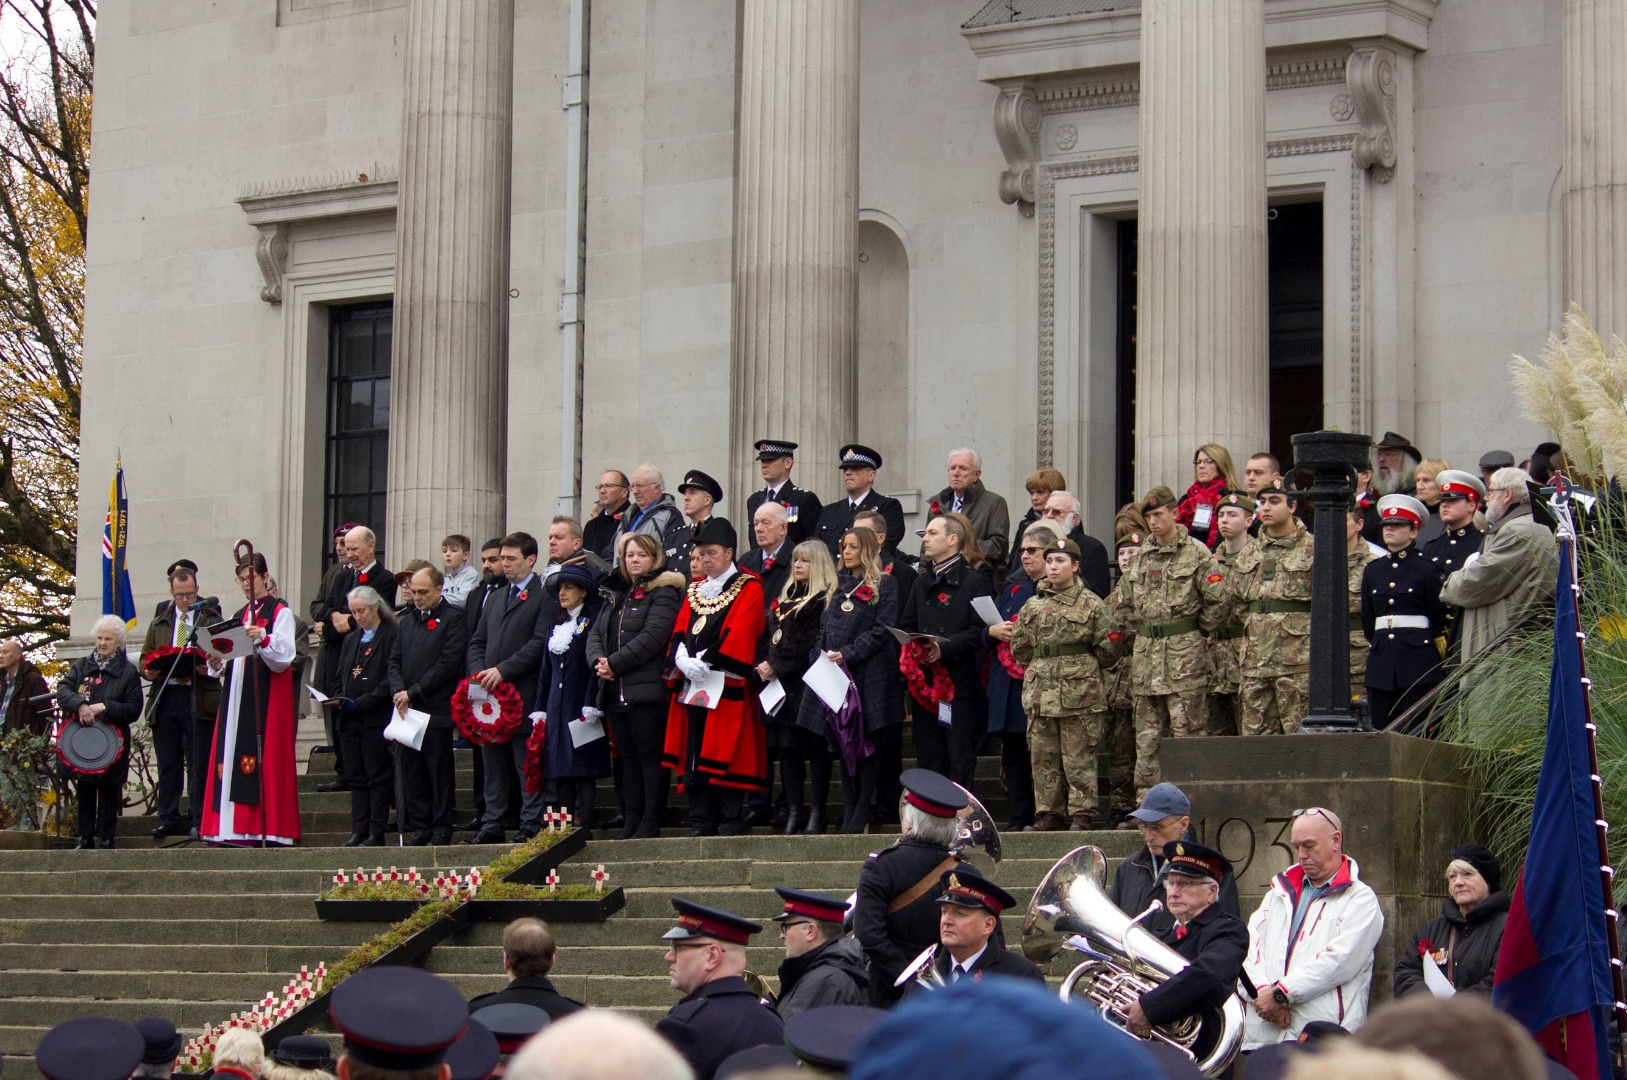 THOUSANDS STAND TOGETHER AS STOCKPORT REMEMBERS